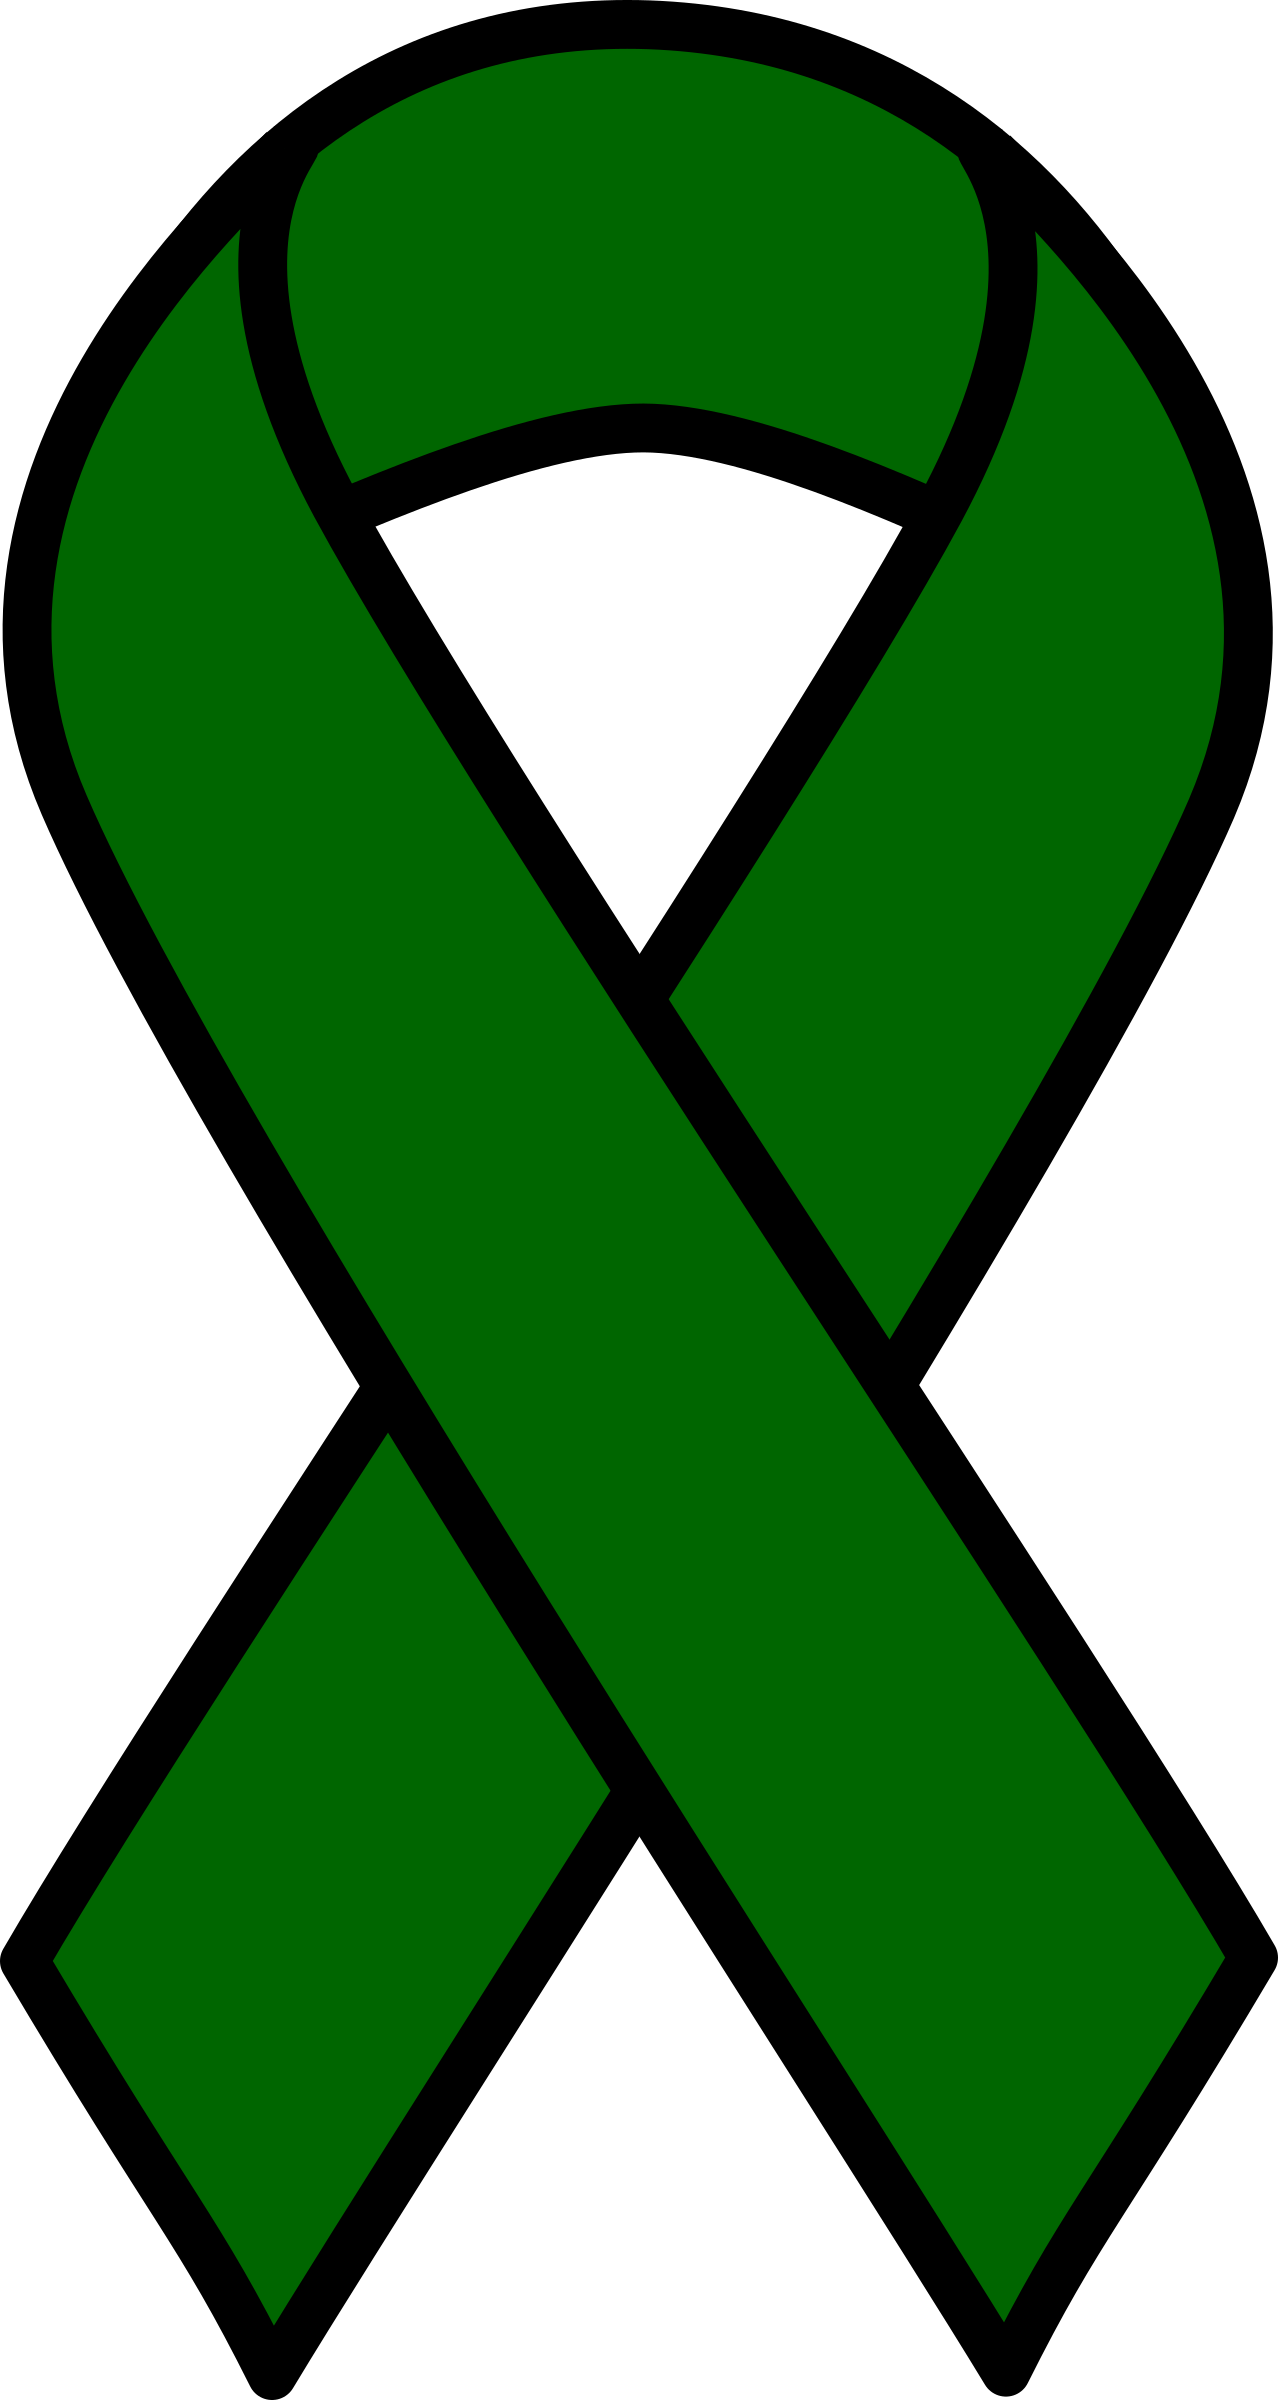 Emerald Liver Cancer Ribbon by barnheartowl